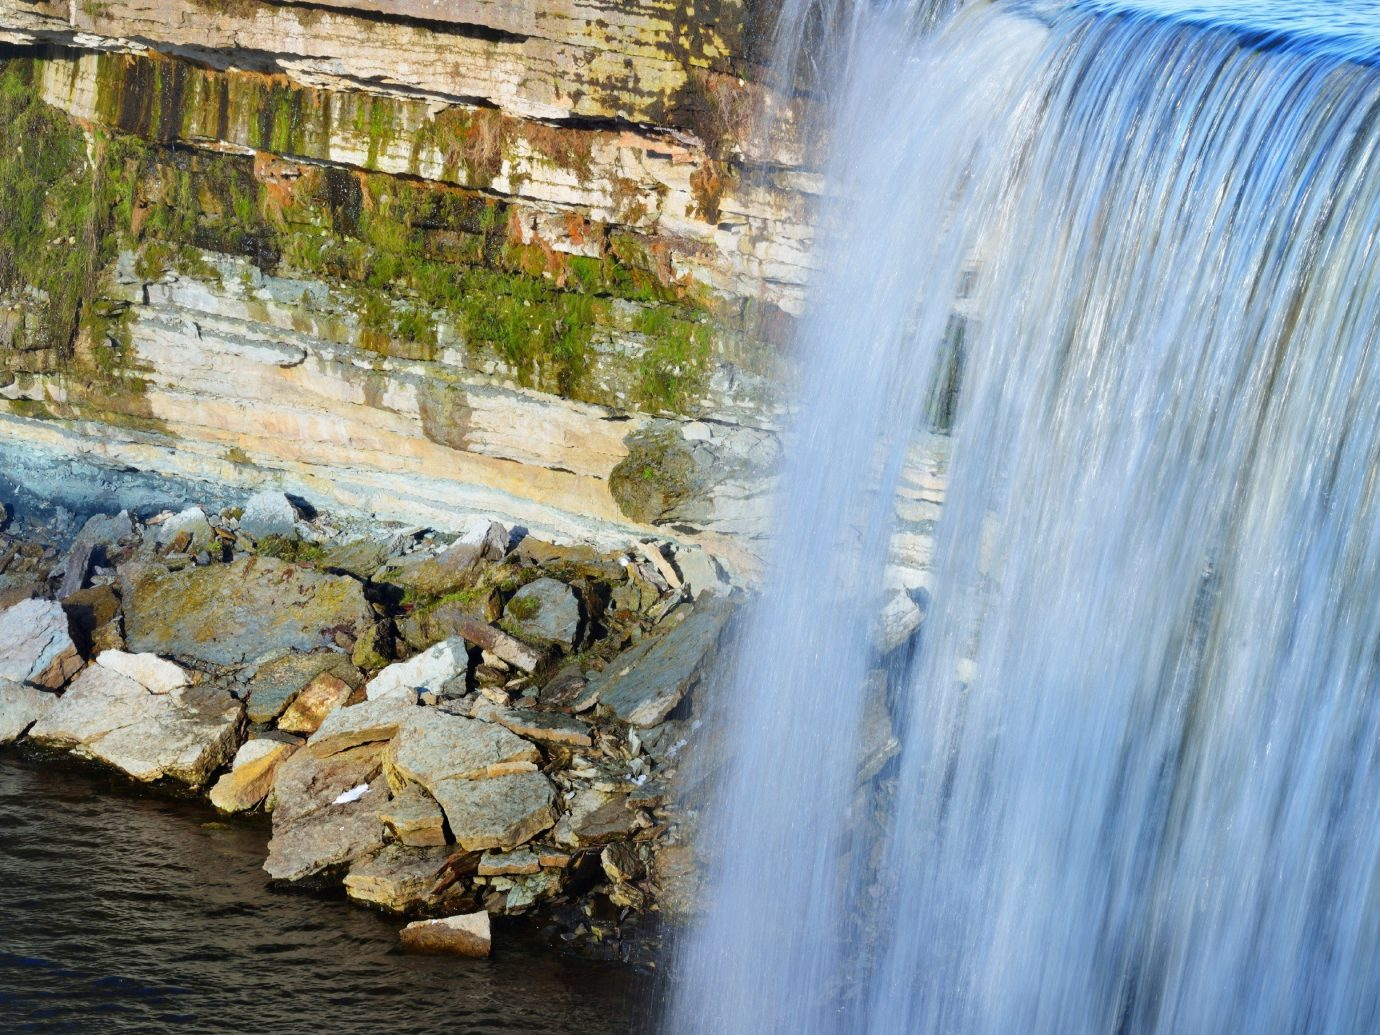 Trip Ideas Nature water Waterfall outdoor body of water River water feature season Winter stream rock rapid autumn